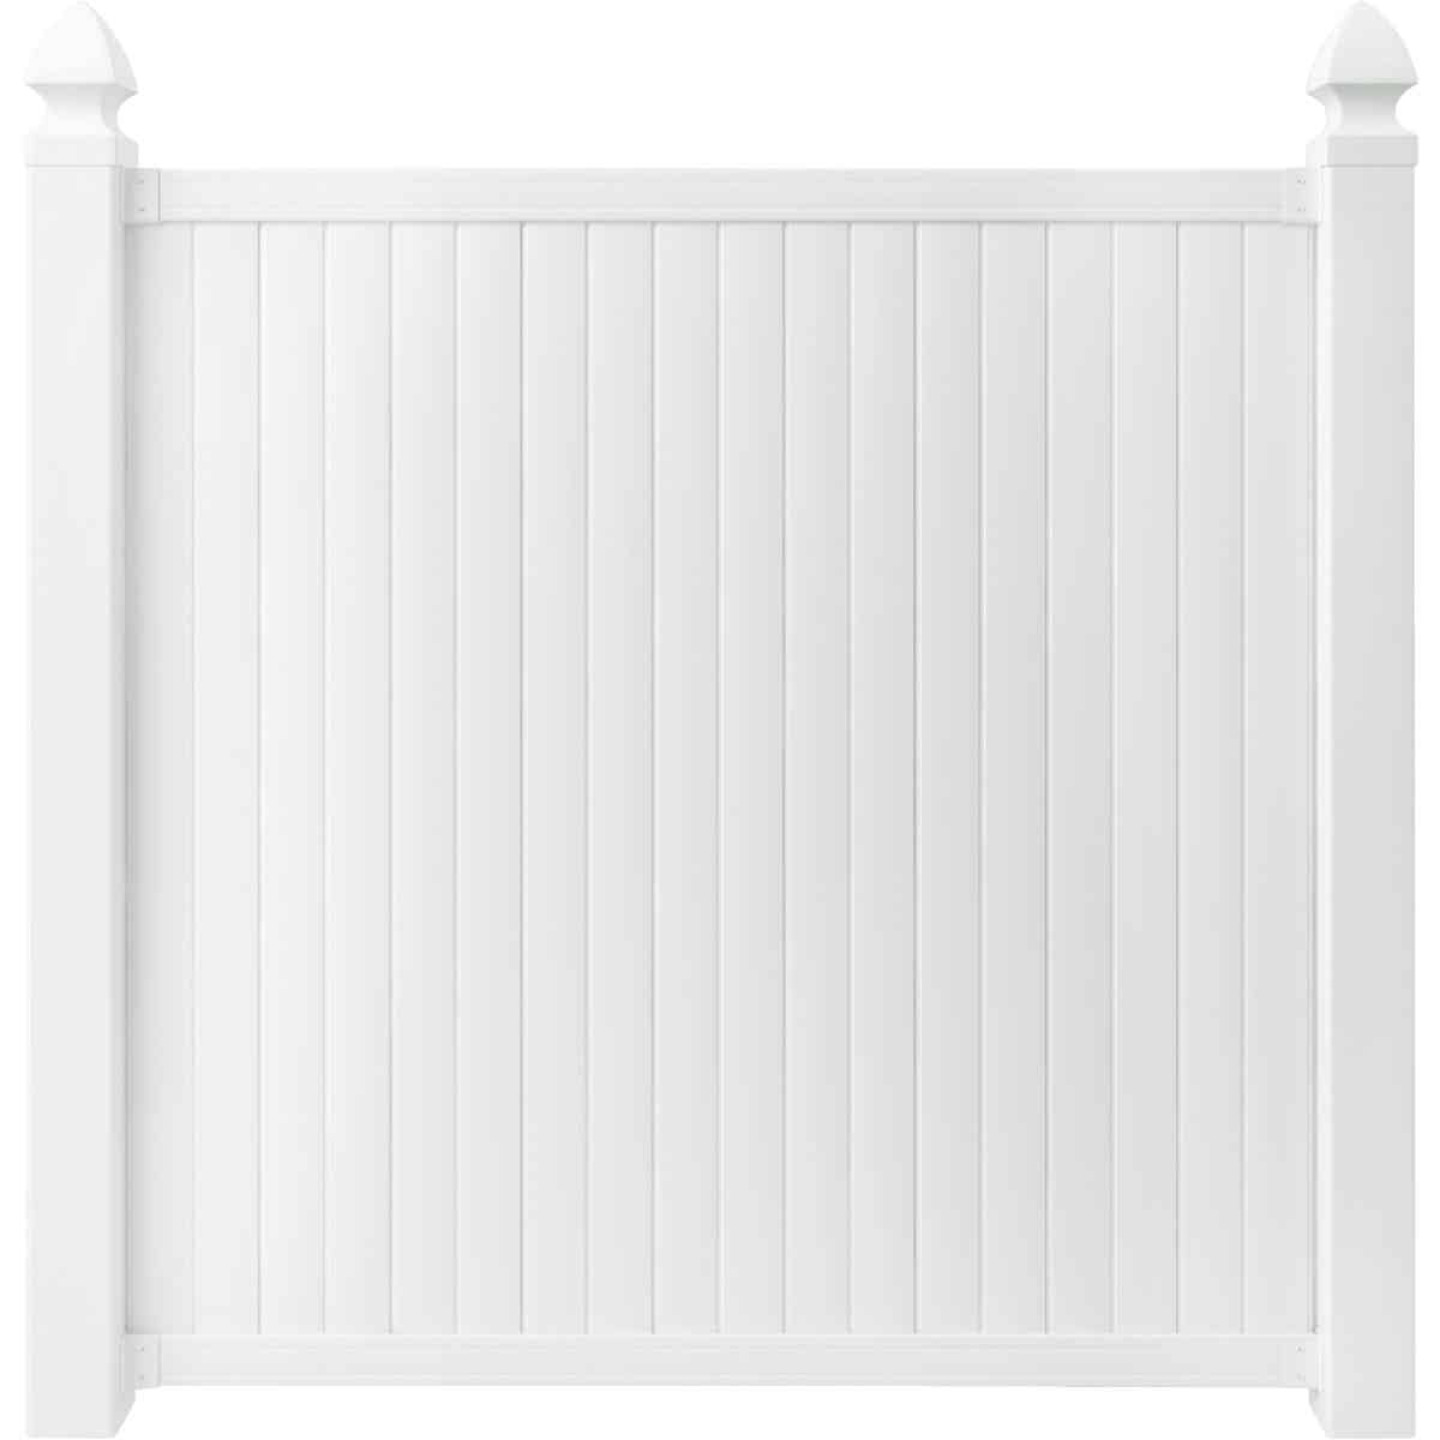 Outdoor Essentials 6 Ft. H. x 6 Ft. L. Standard White Vinyl Privacy Fence Image 3